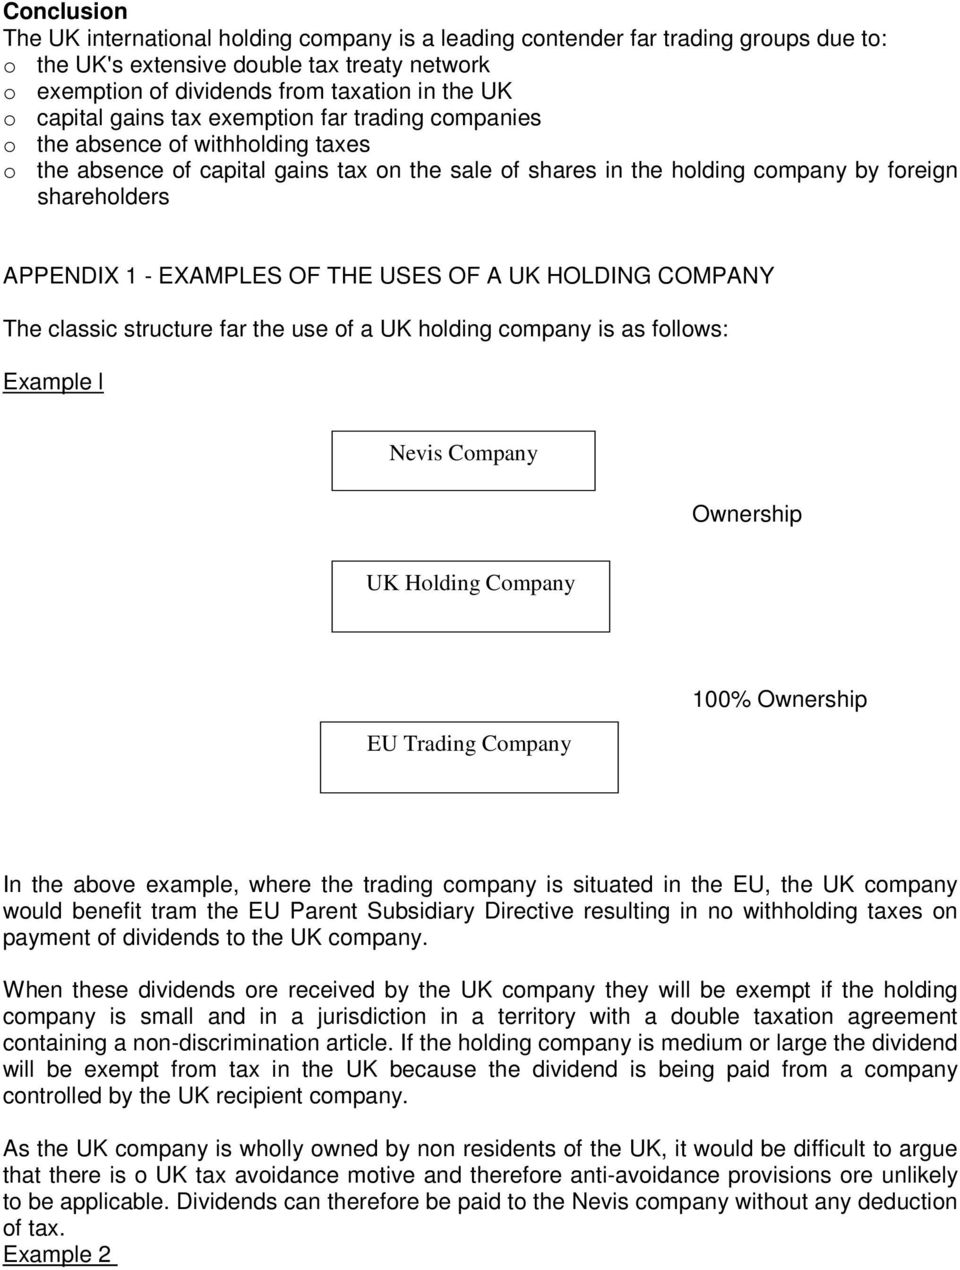 - EXAMPLES OF THE USES OF A UK HOLDING COMPANY The classic structure far the use of a UK holding company is as follows: Example l Nevis Company Ownership UK Holding Company EU Trading Company 100%